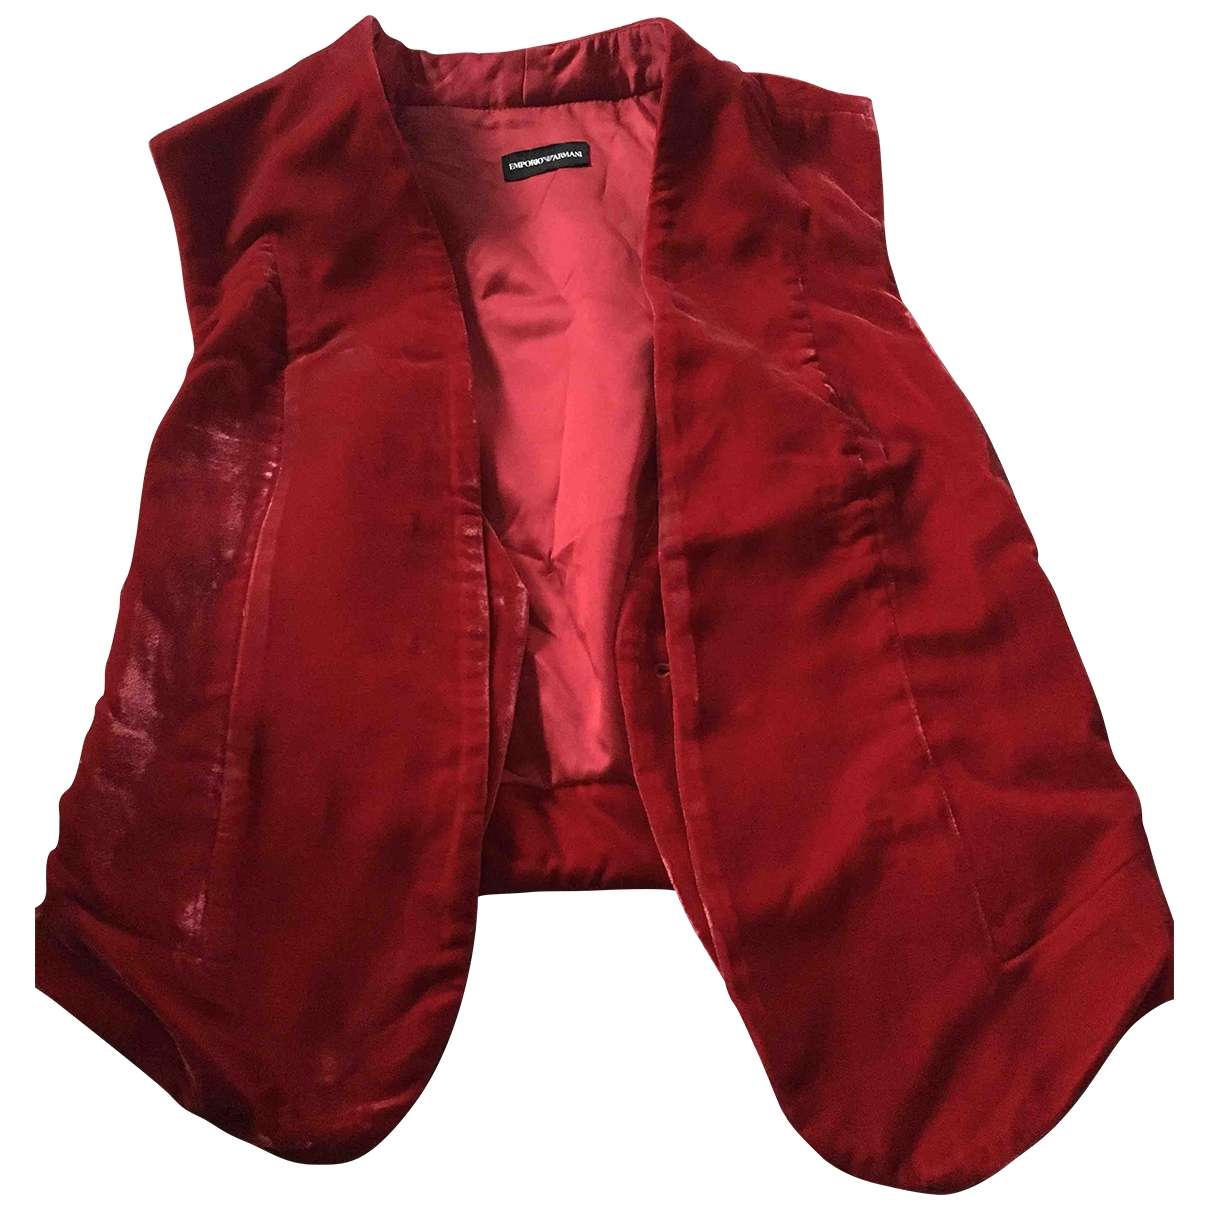 Emporio Armani \N Red Suede jacket for Women 38 IT